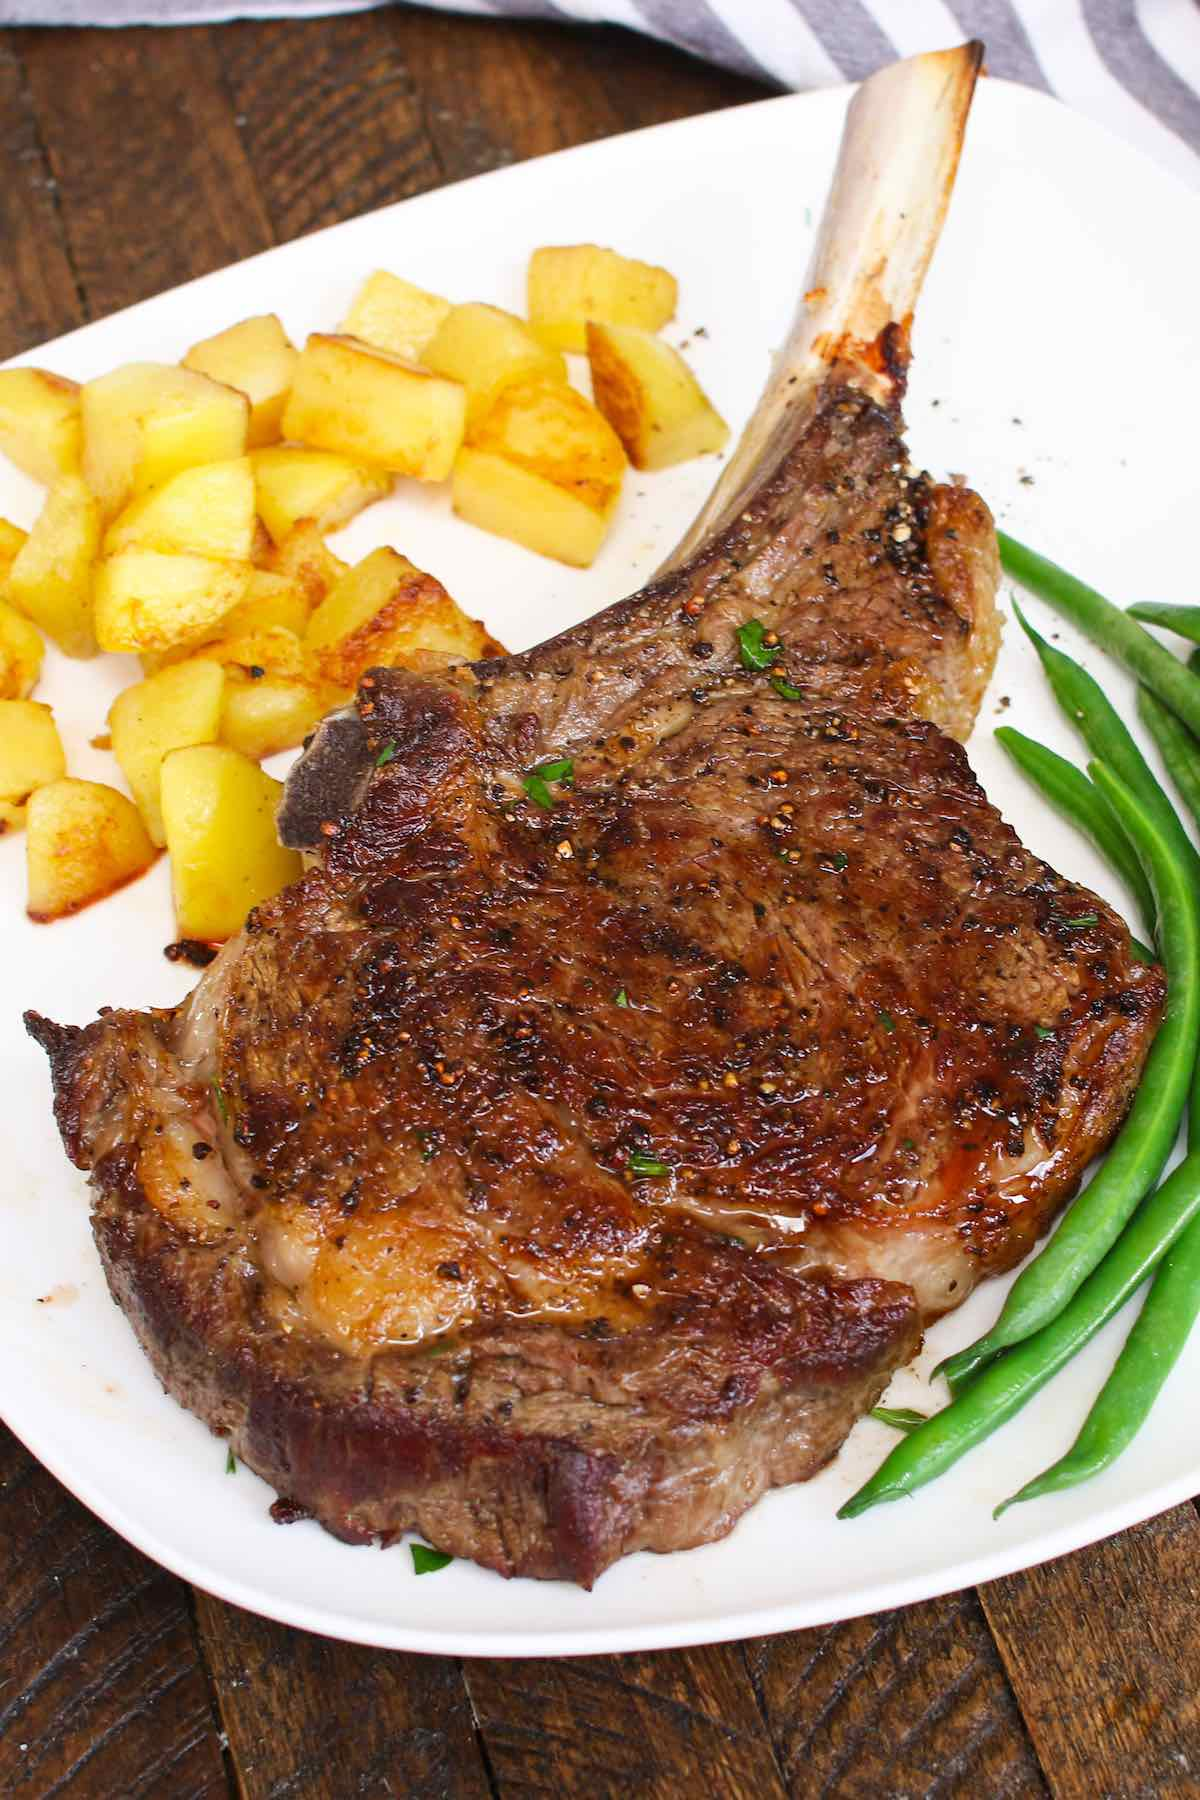 Cowboy steak cooked in the oven and served with green beans and sauteed potatoes for a delicious steak dinner